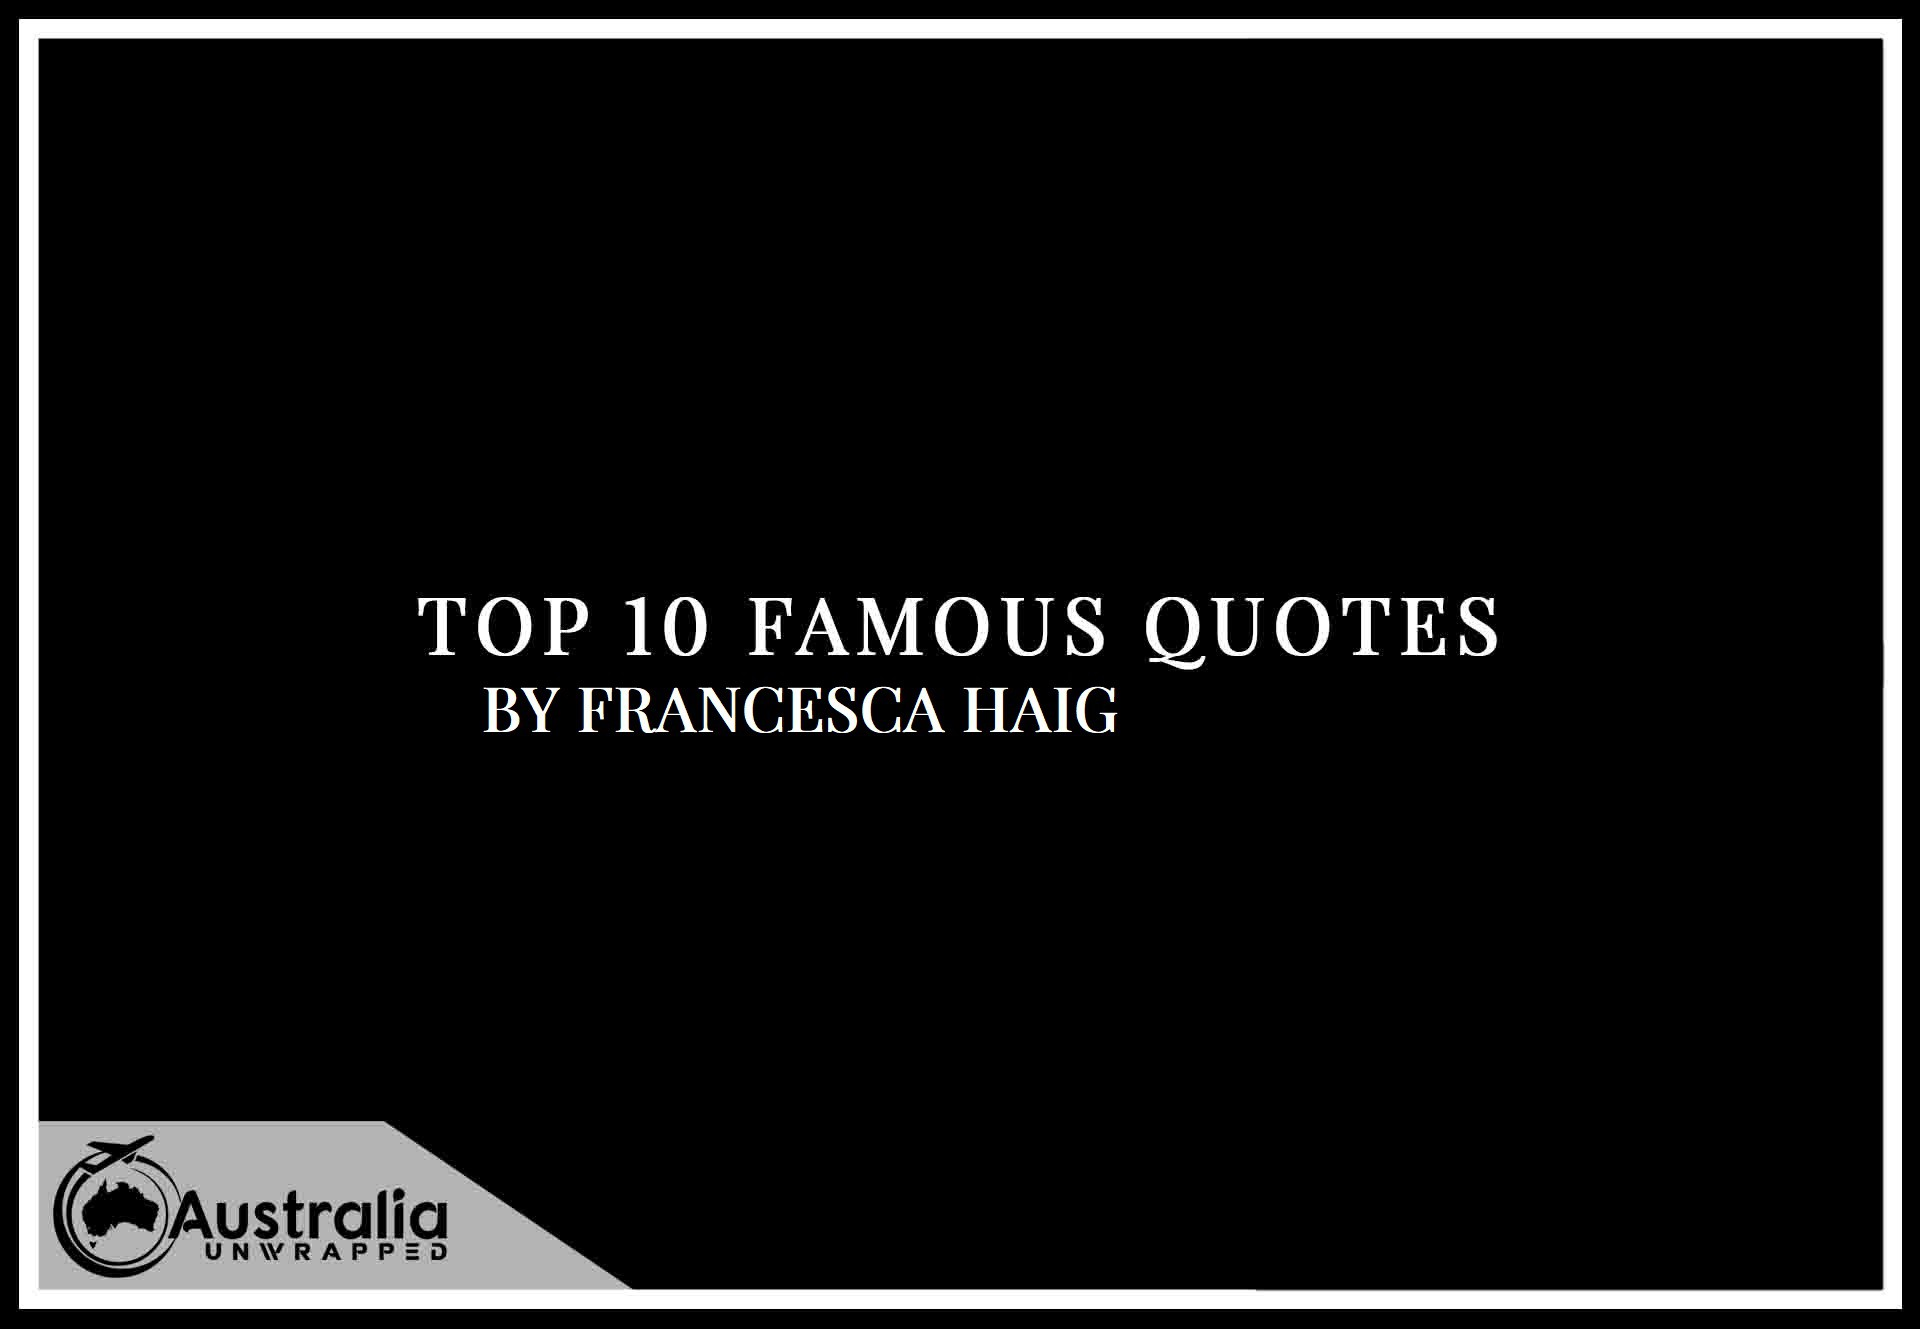 Top 10 Famous Quotes by Author Francesca Haig